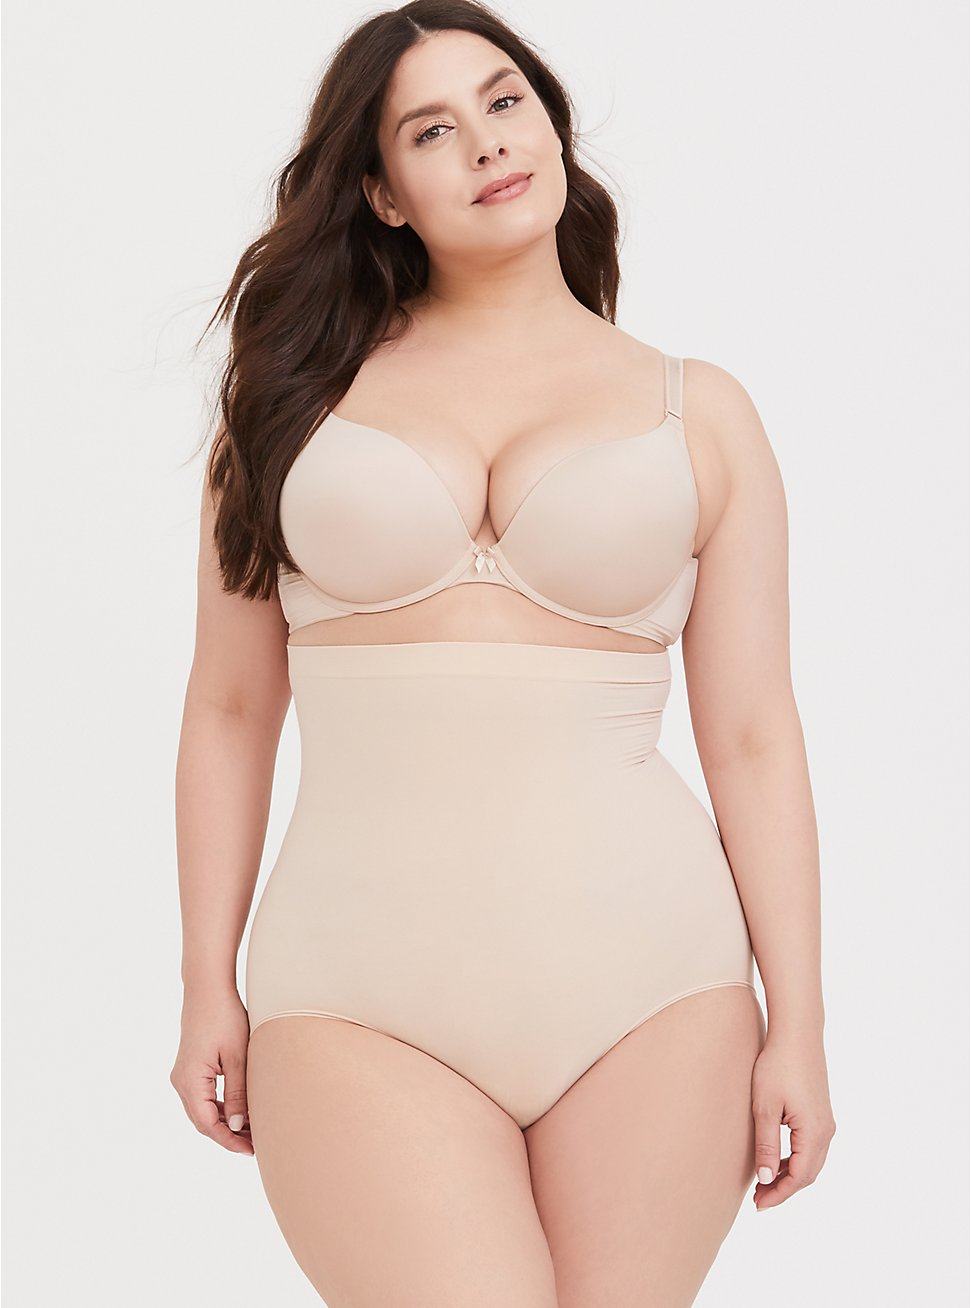 Cheap Shapewear Spanx Deals Today Stores